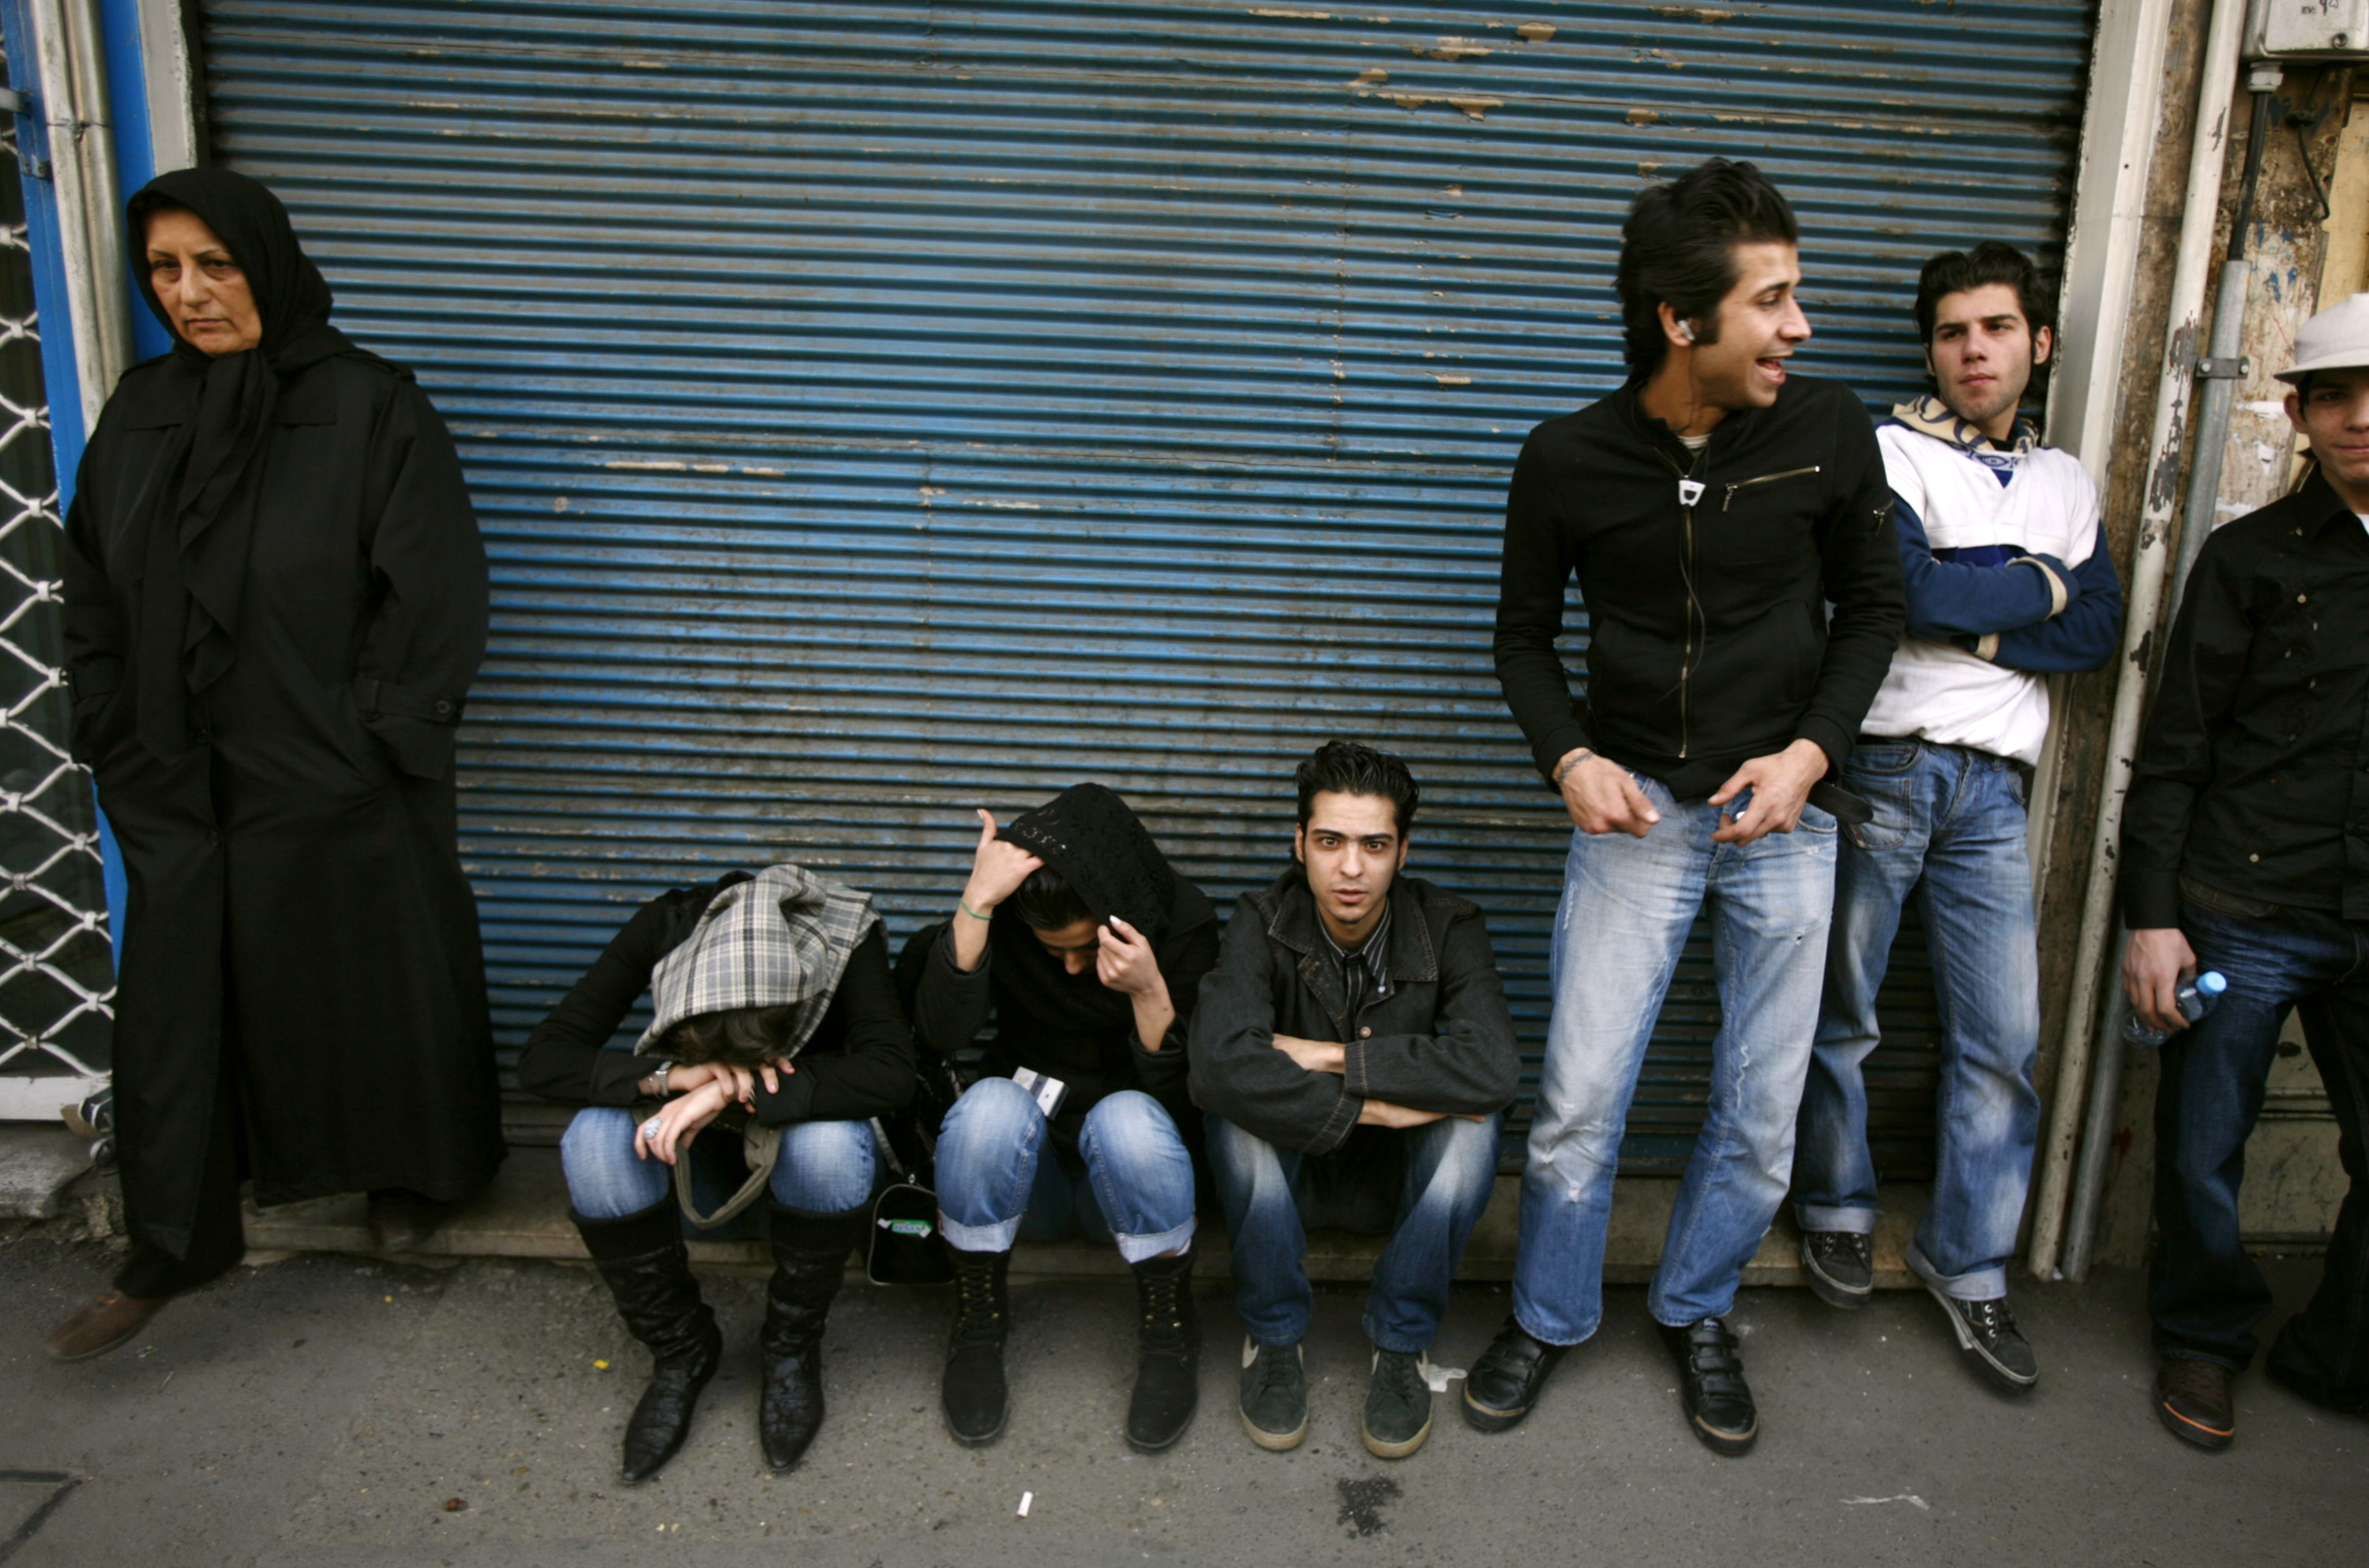 Yes Iranians Wear Jeans Pitfalls Of Public Diplomacy With Iran